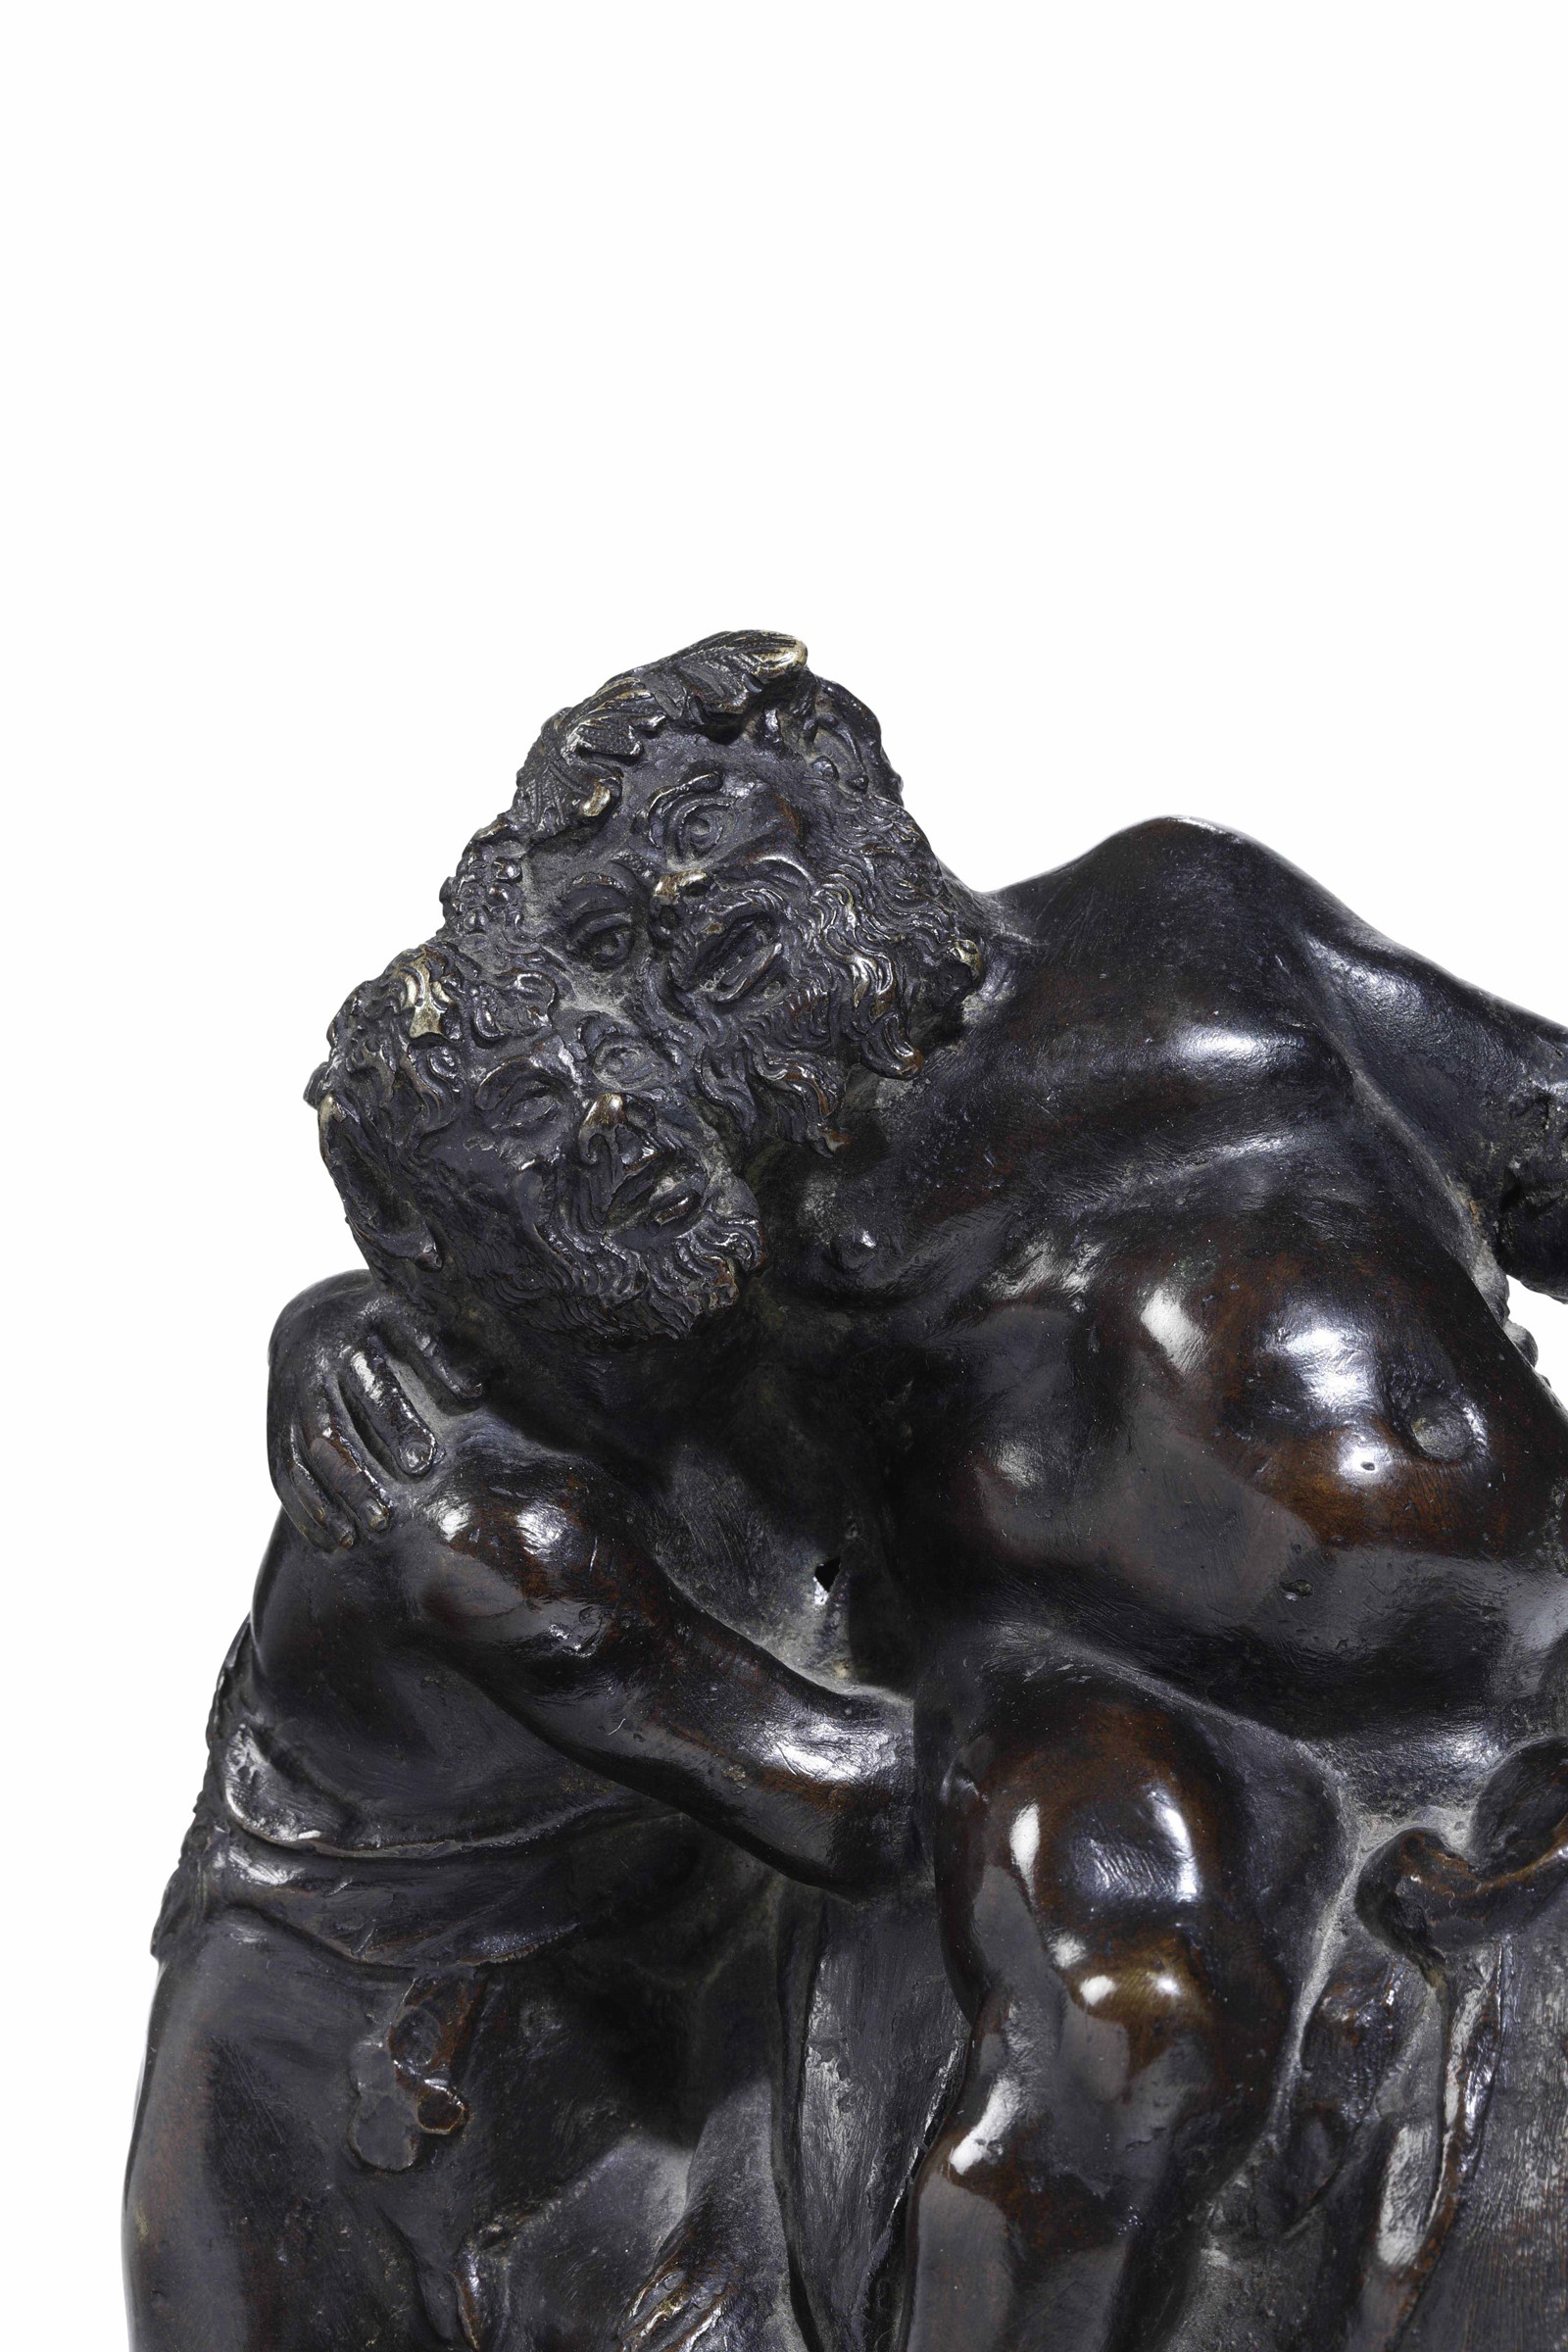 A bronze group, Italian-Flemish artist, 15-1600s - cm 26x20. L'insolita e buffa [...] - Image 2 of 2